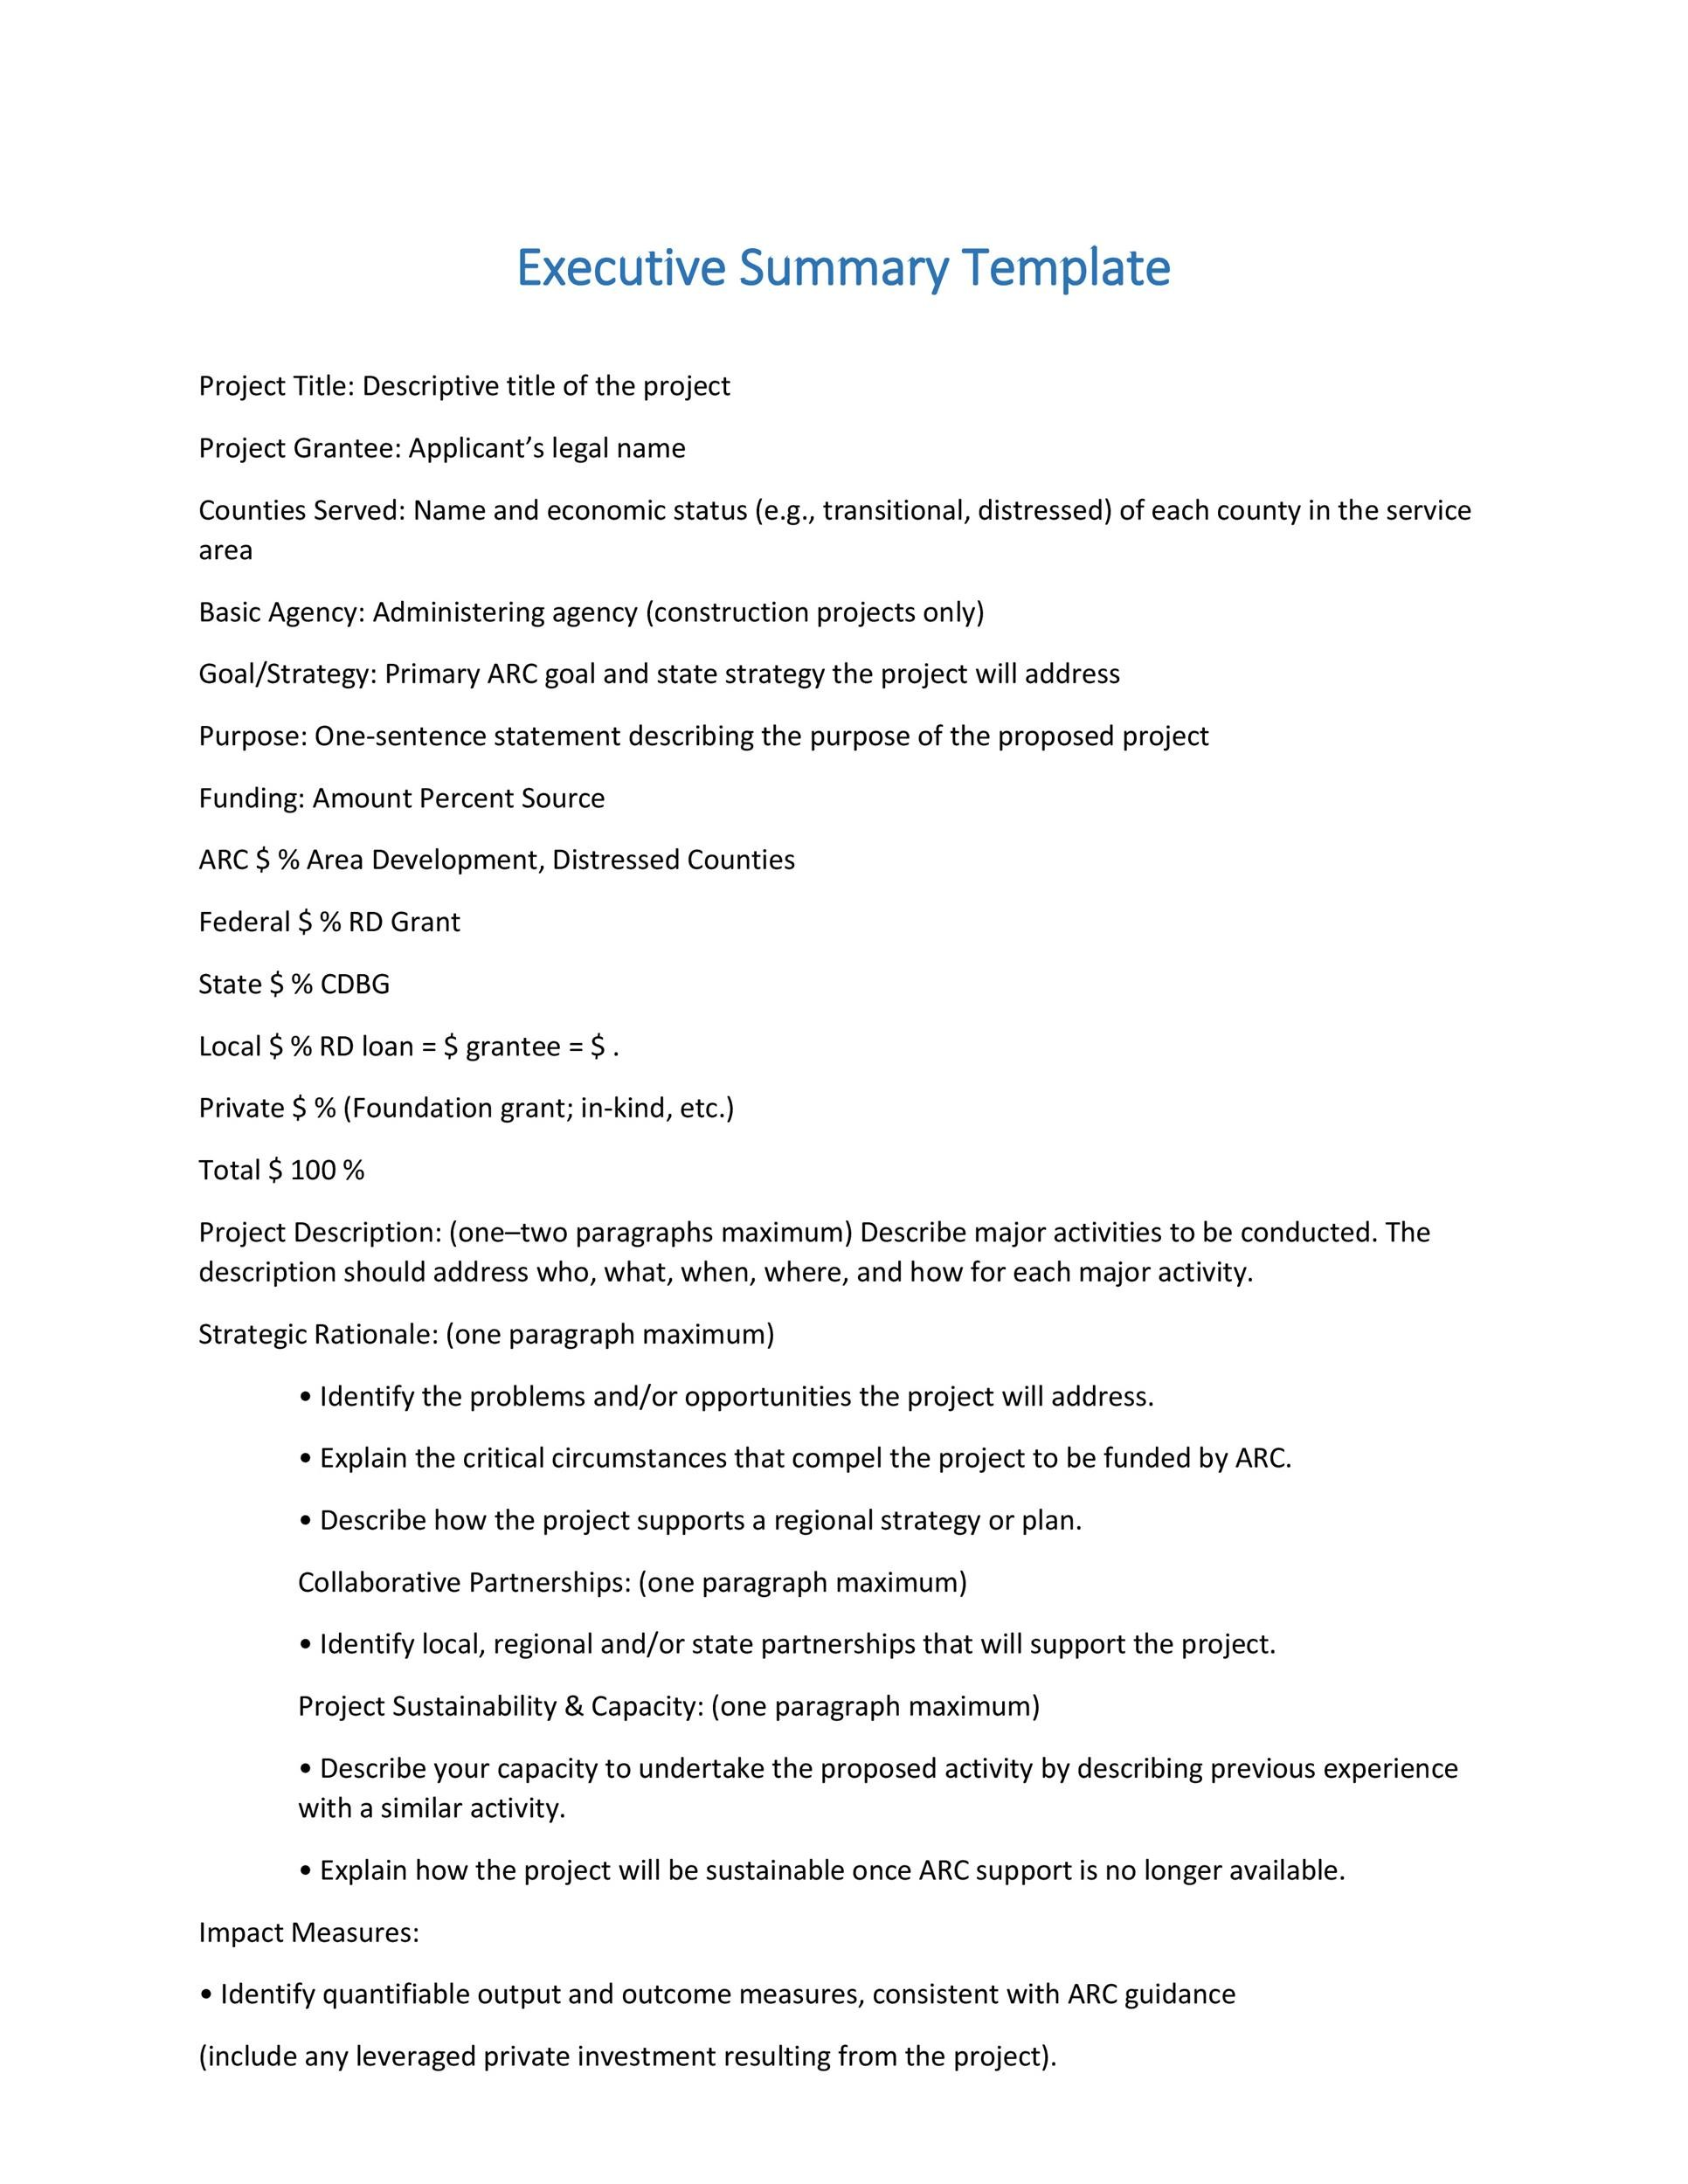 Free Executive Summary Template 13